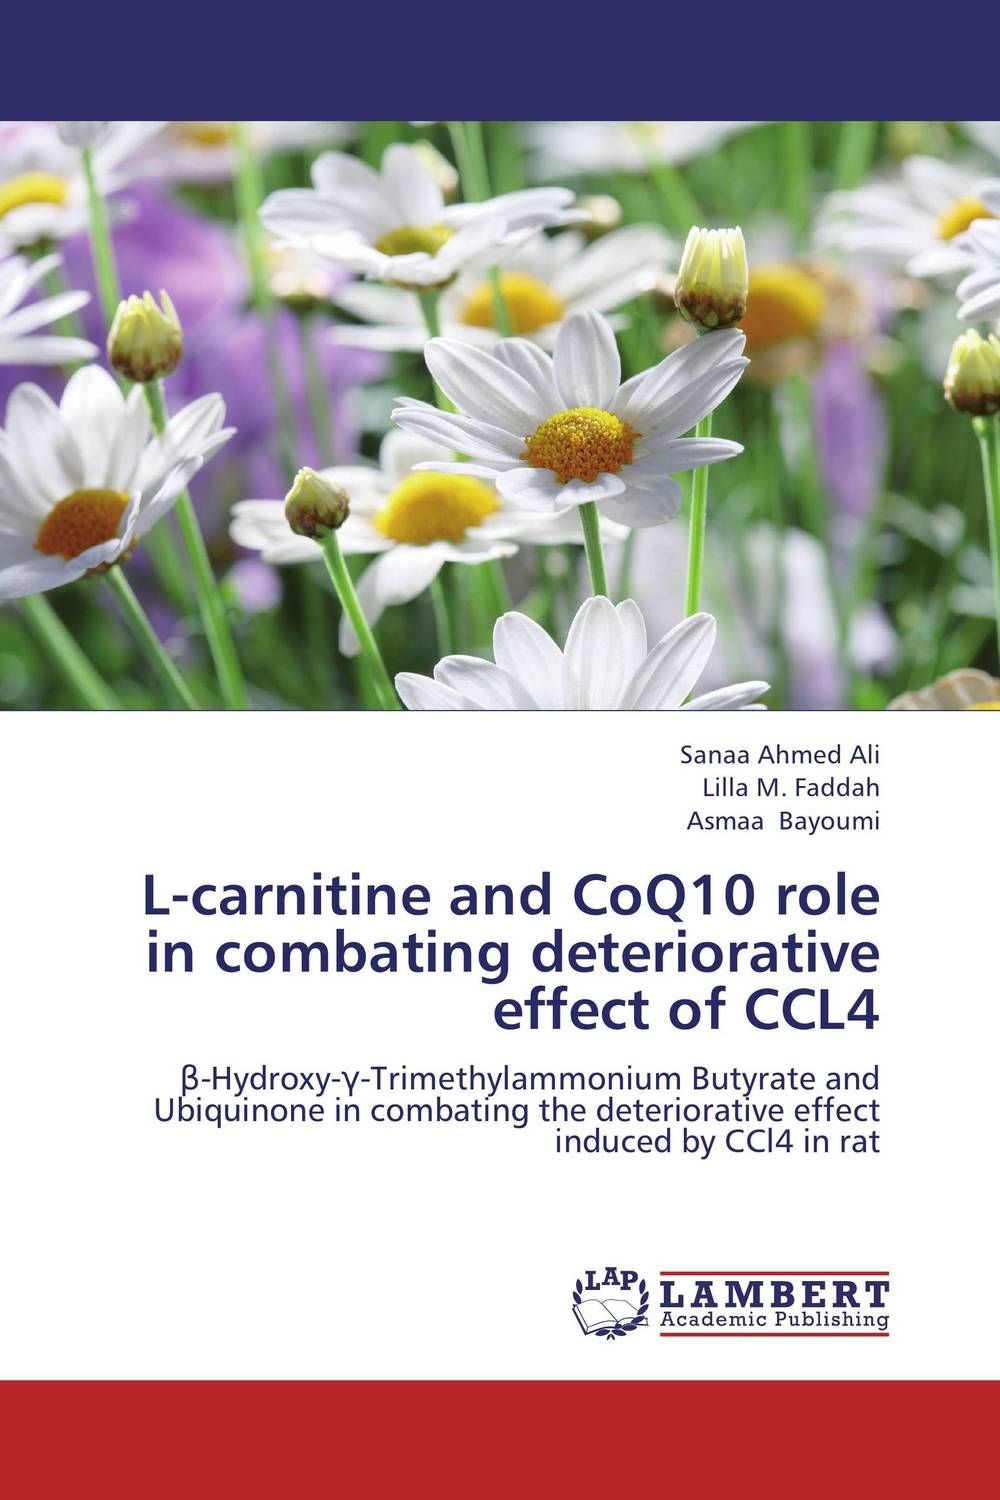 L-carnitine and CoQ10 role in combating deteriorative effect of CCL4 fatty liver imaging patterns and pitfalls